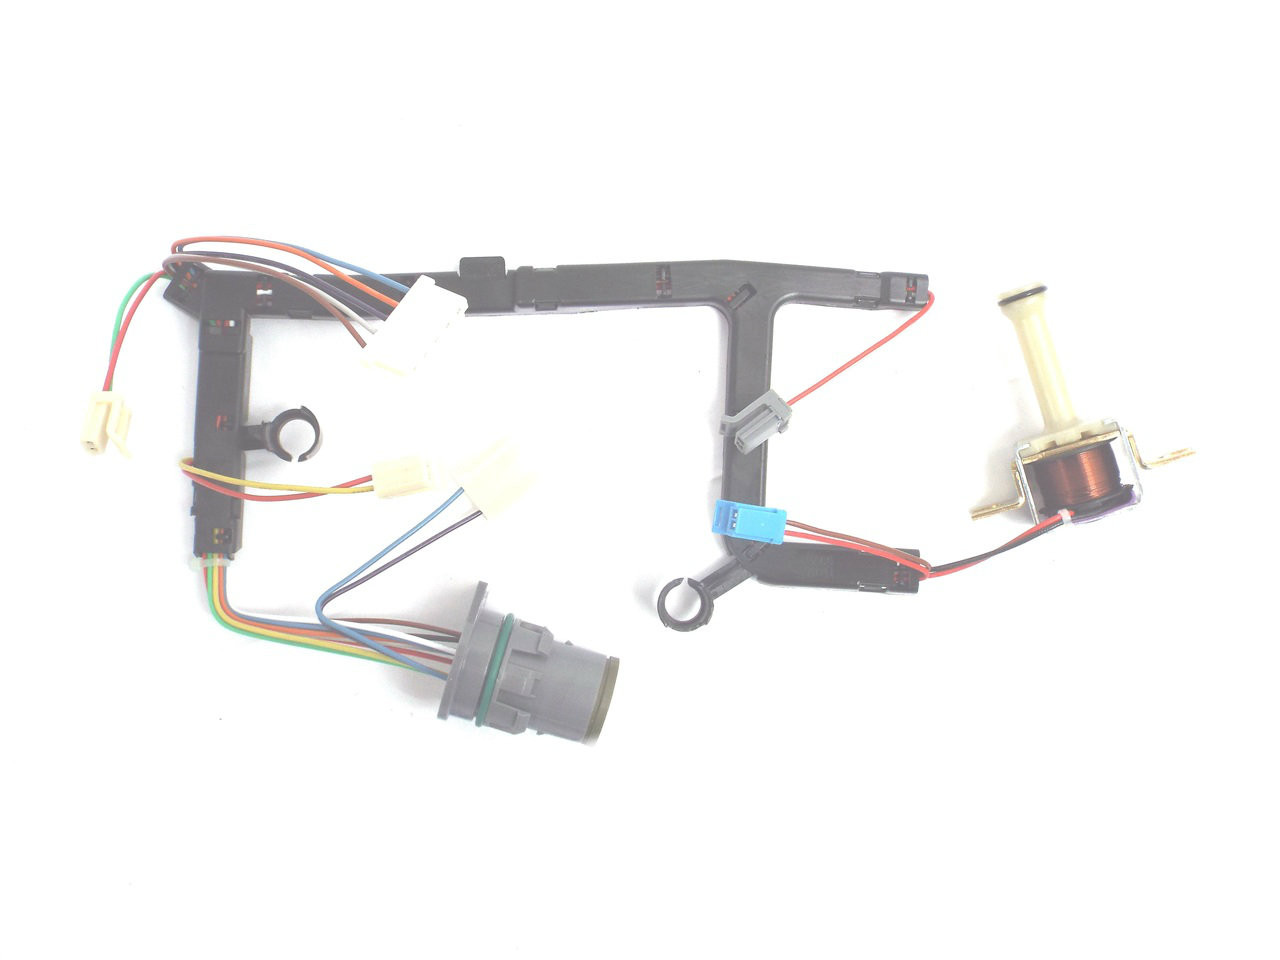 gm 4l60e transmission wiring harness from global transmission parts 1997 2003 [ 1280 x 960 Pixel ]